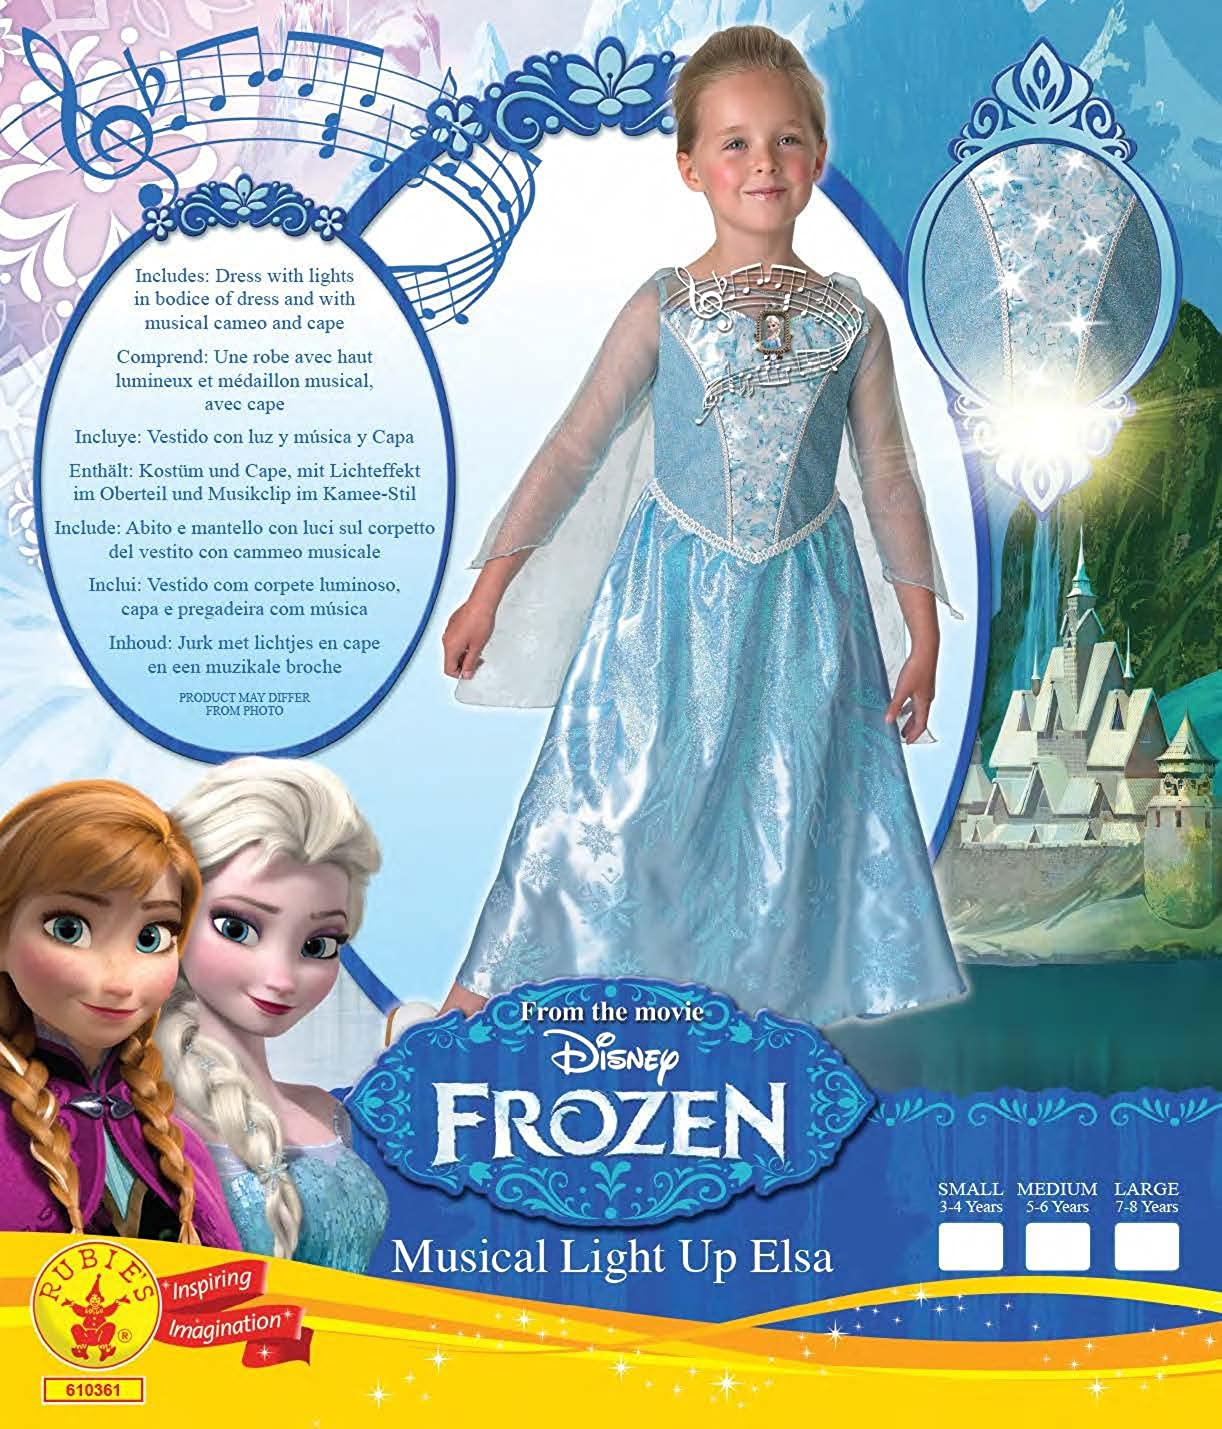 De Disney Frozen Elsa Musical & Light Up - Childrens Disfraz: Amazon.es: Juguetes y juegos